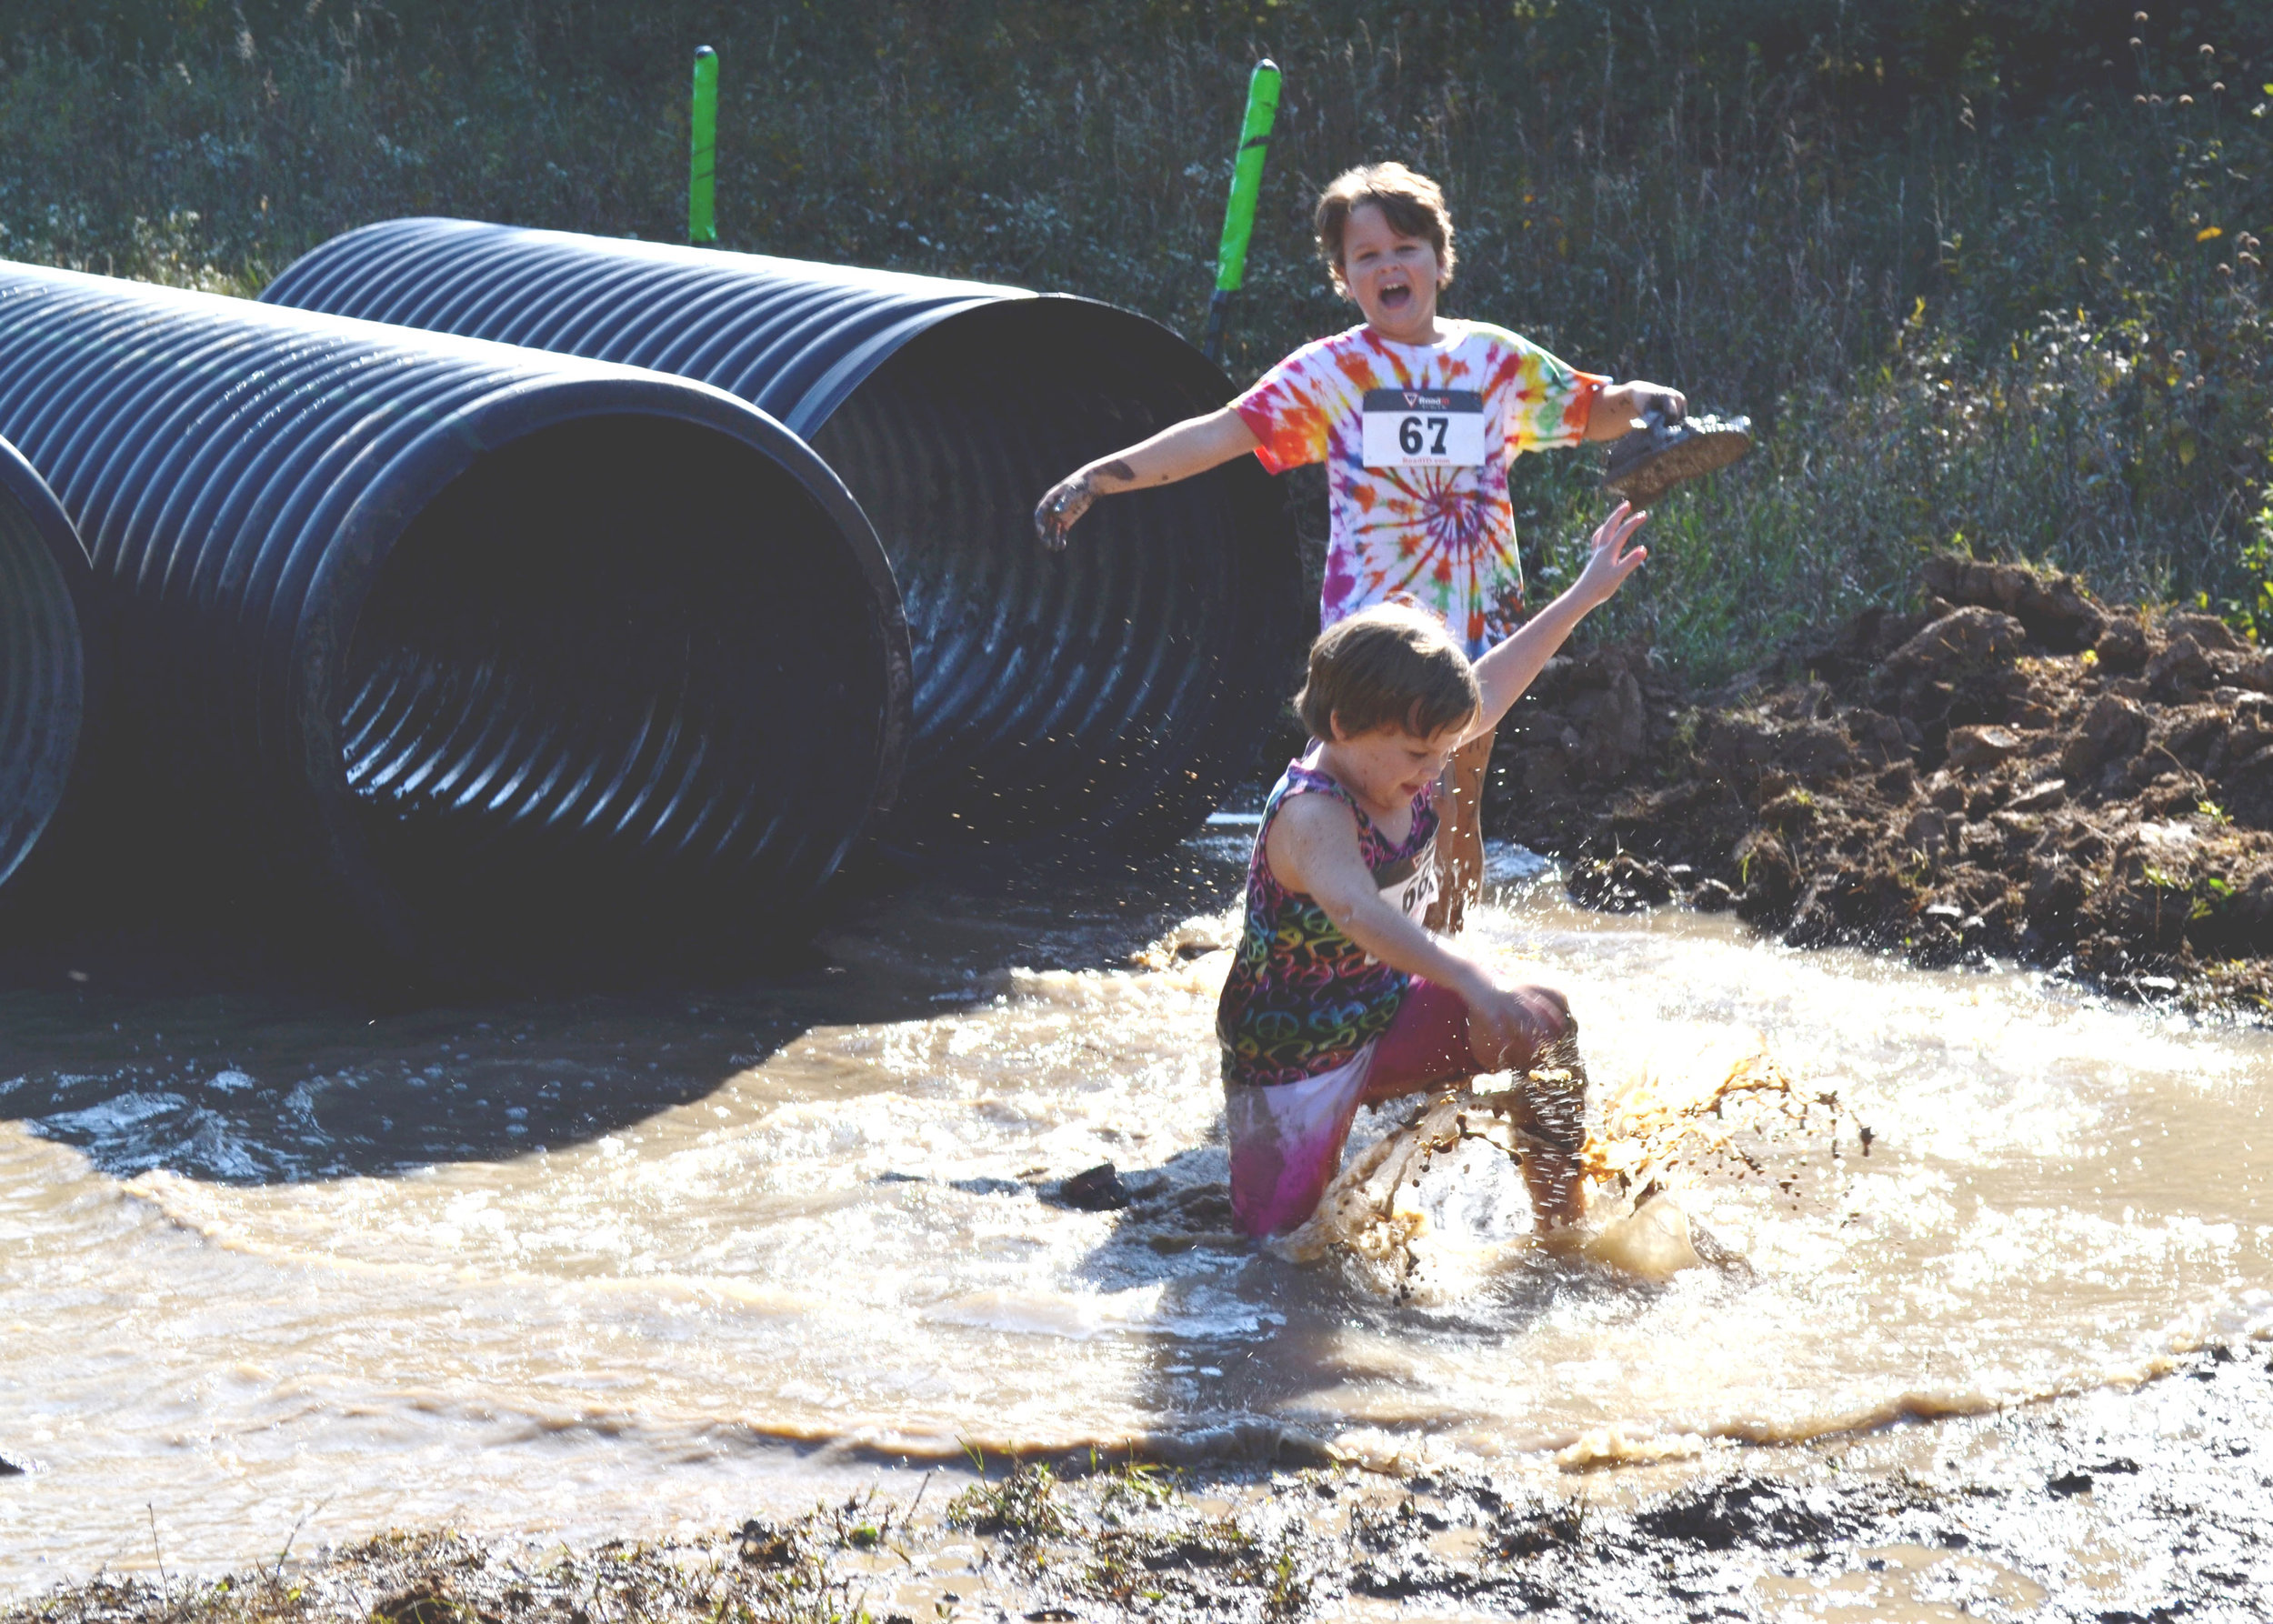 Two-Kids-Splashing-Tube-Obstacle.jpg